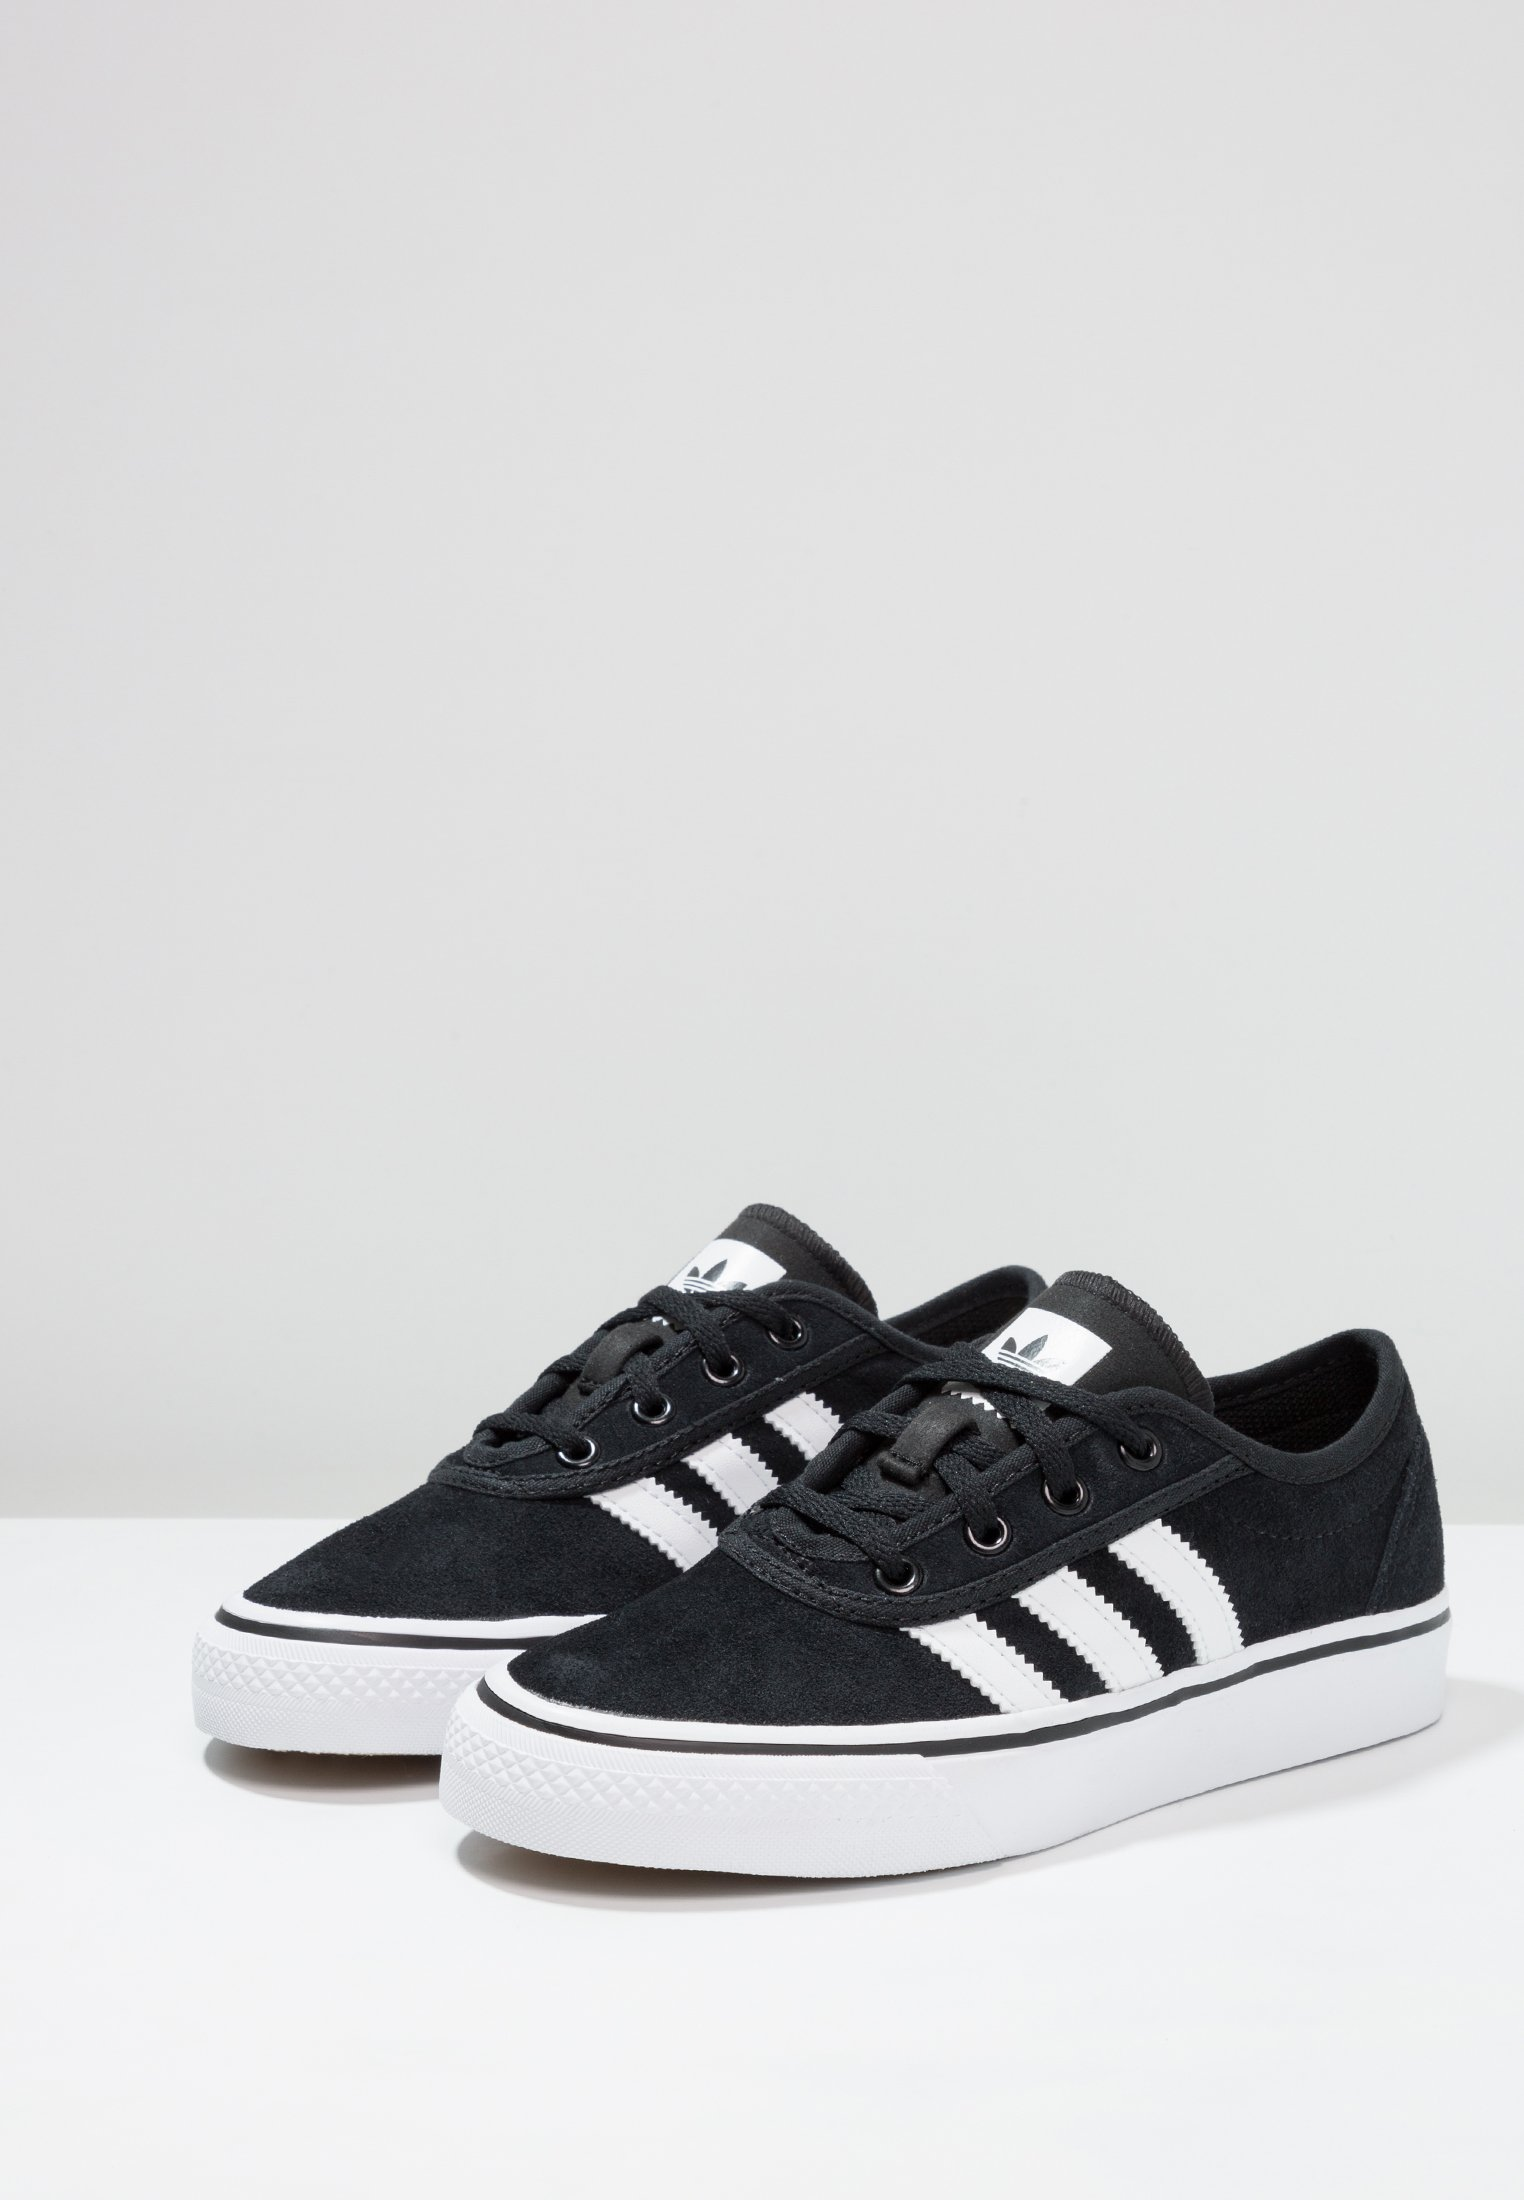 Adidas Originals Adi-ease - Sneakers Core Black/footwear White